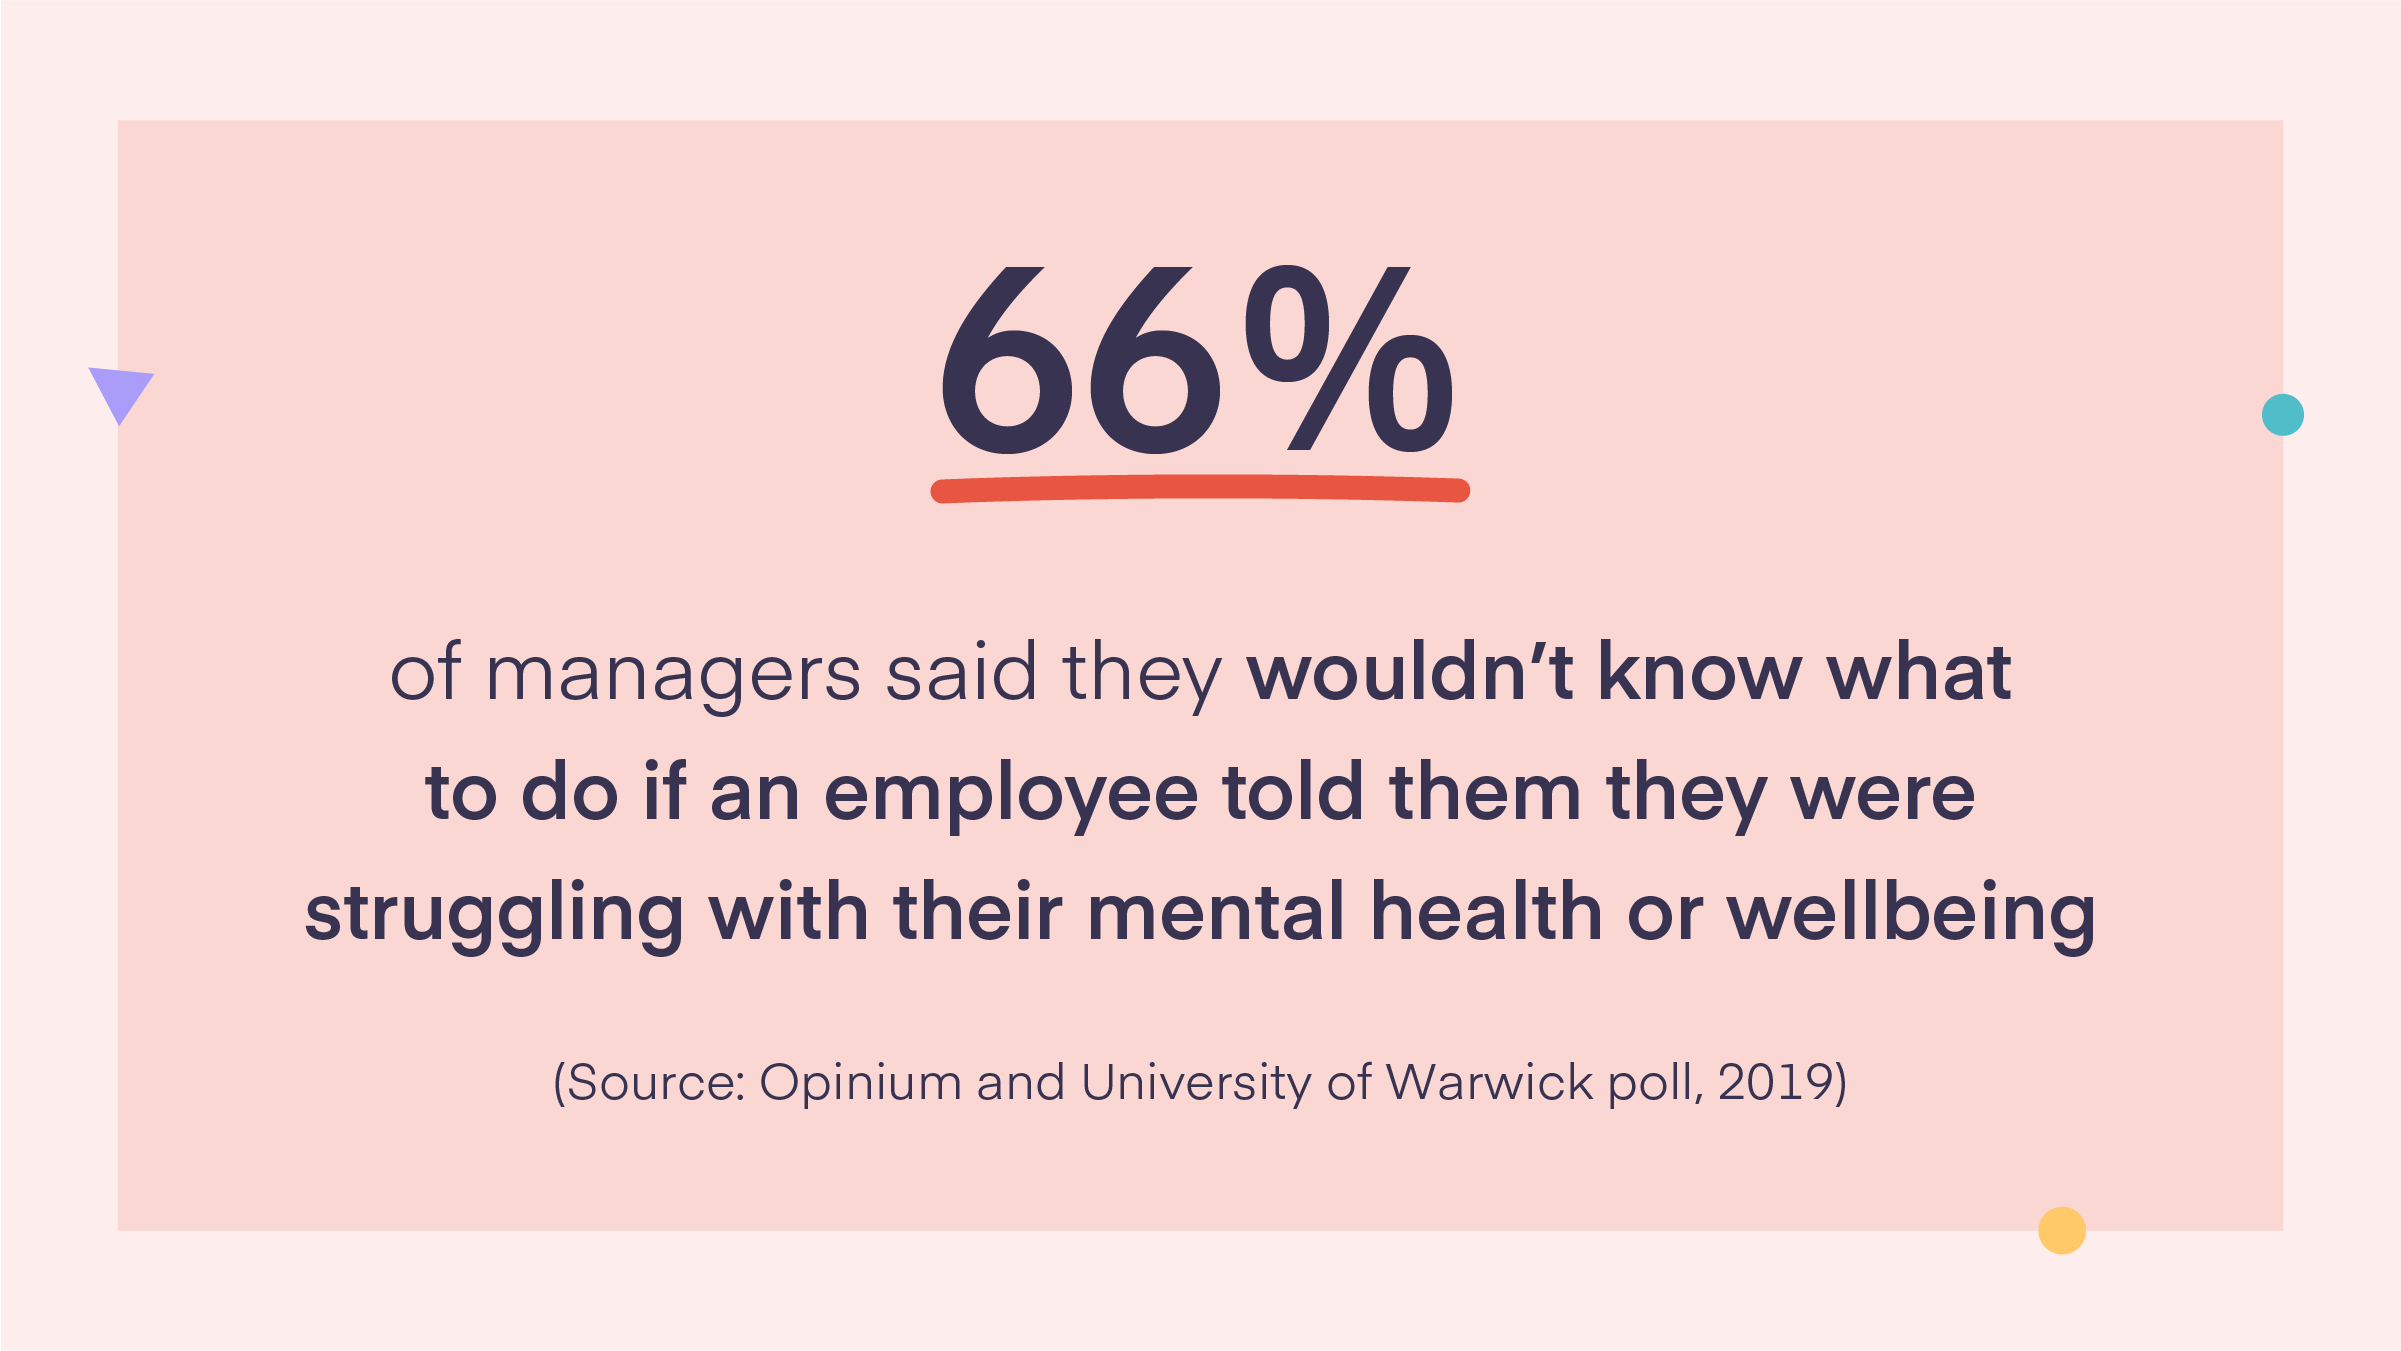 66% of managers said they wouldn't know what to do if an employee told them they were struggling with their mental health or wellbeing